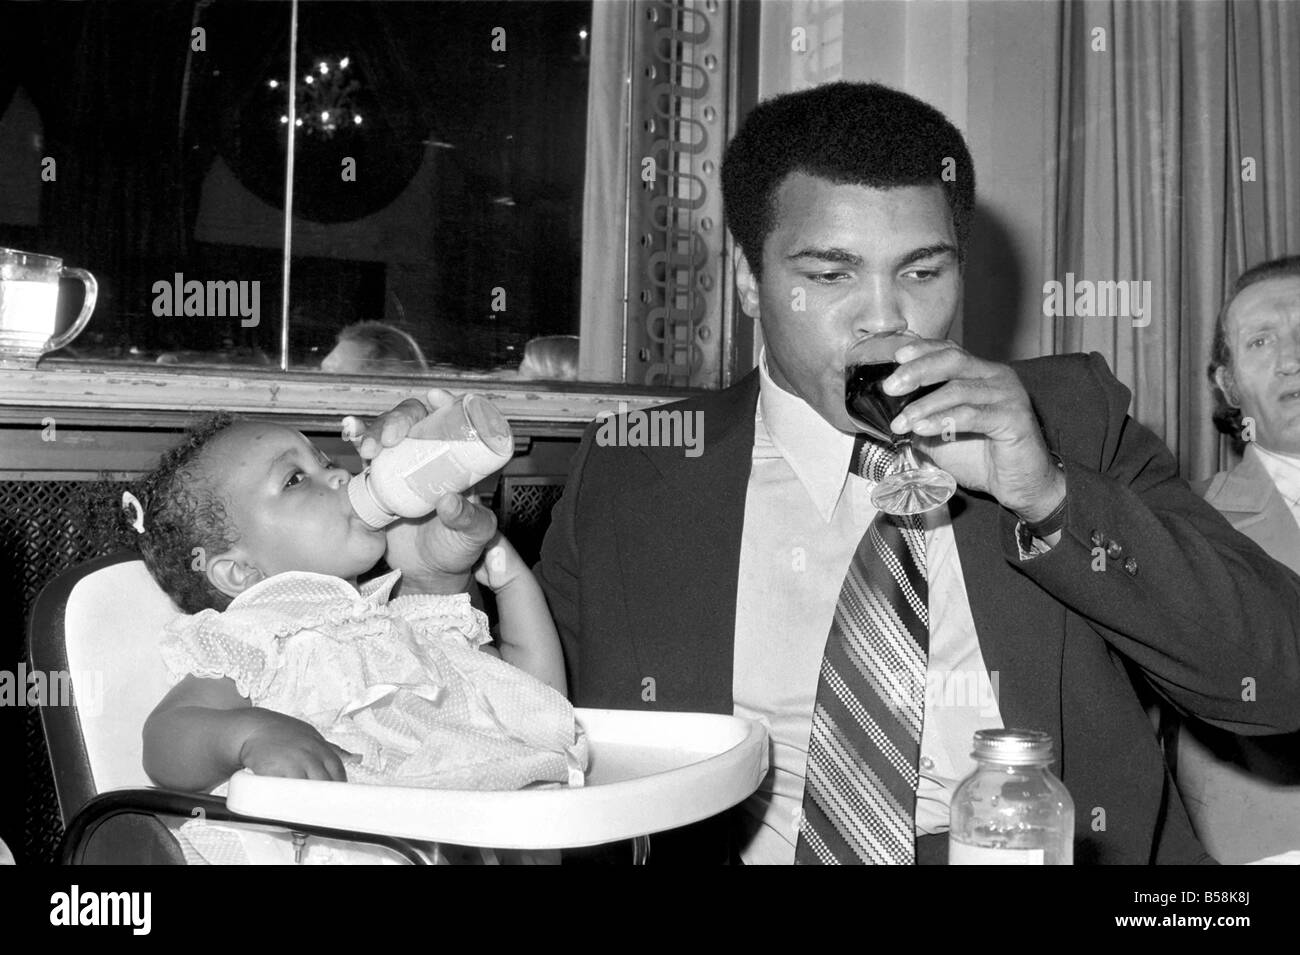 cassius clay muhammad ali First as cassius clay and then as muhammad ali, he was idolized and vilified in almost equal measure until he achieved the status of a global icon, being named sportsman of the 20th century by.